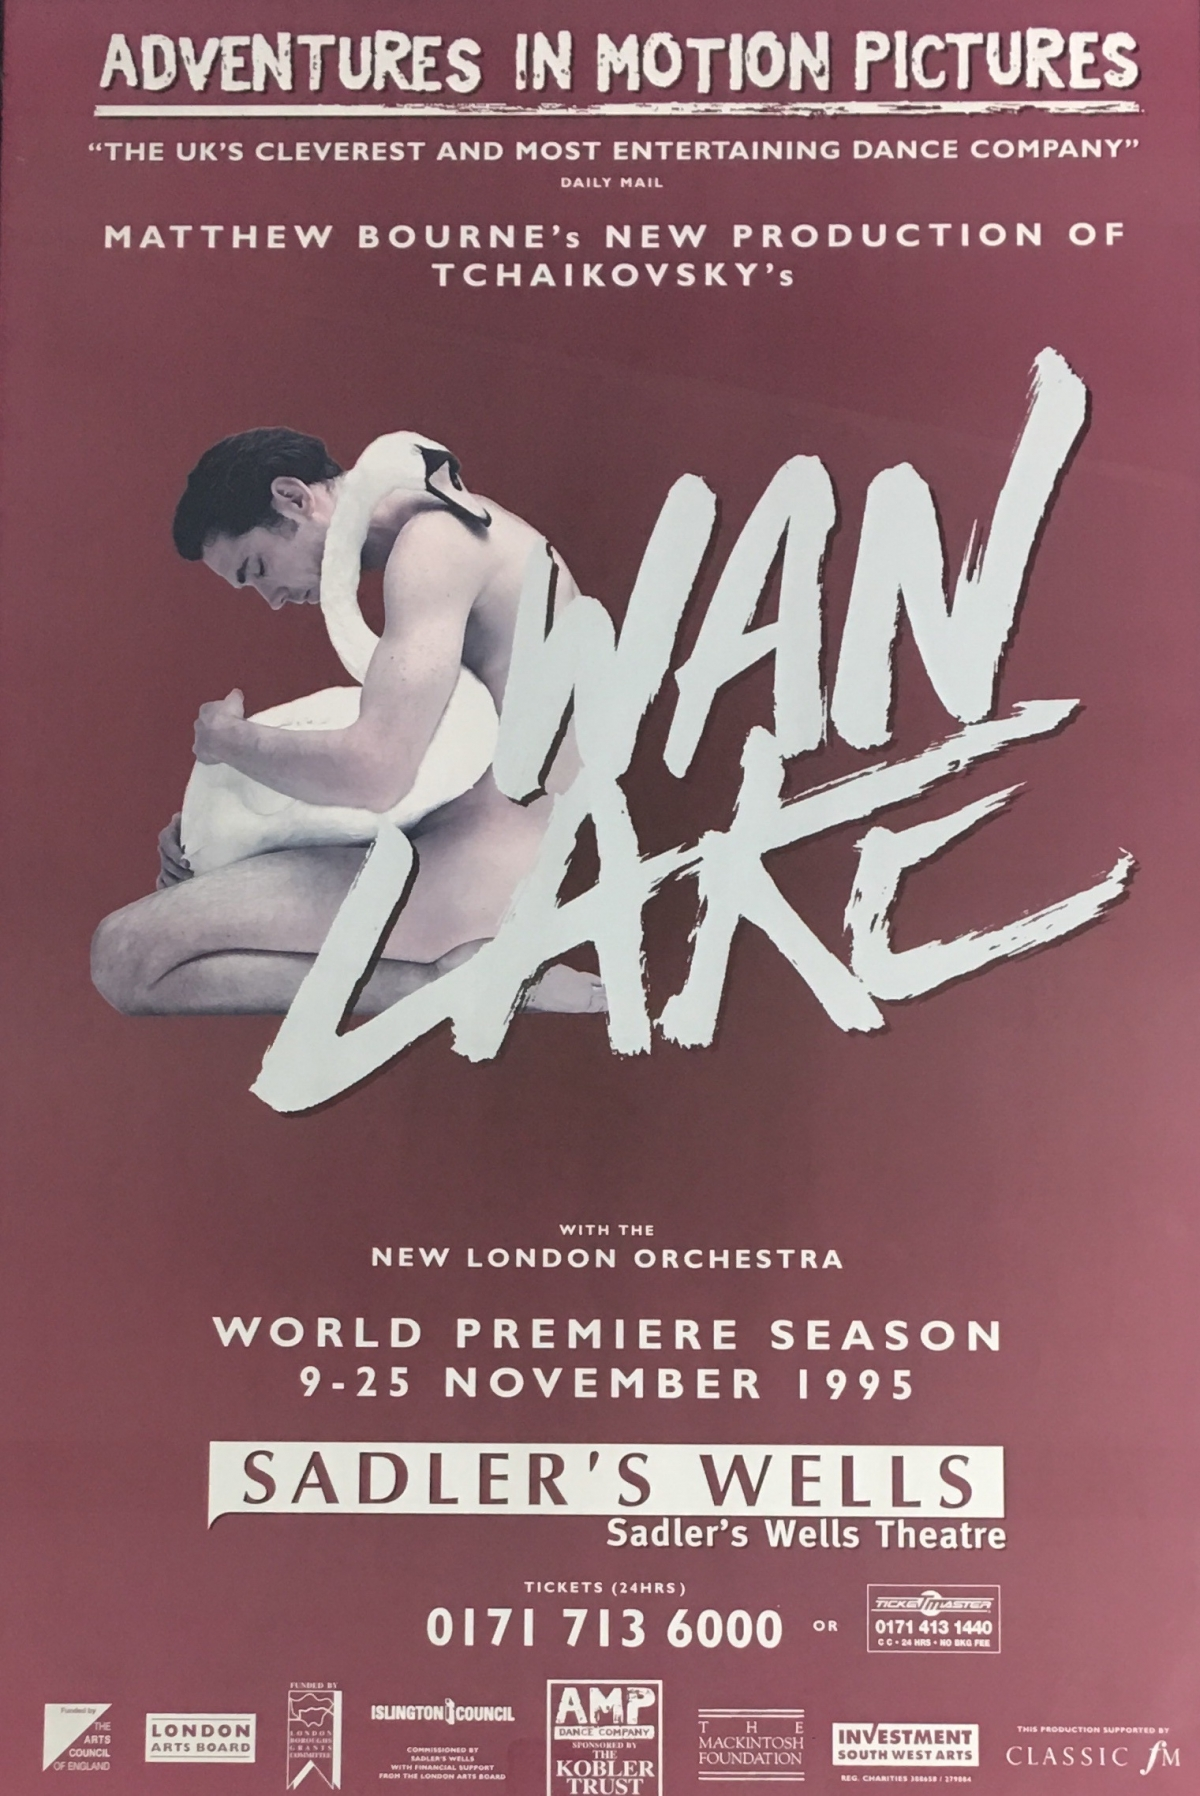 An image of the original Swan Lake show poster from 1995